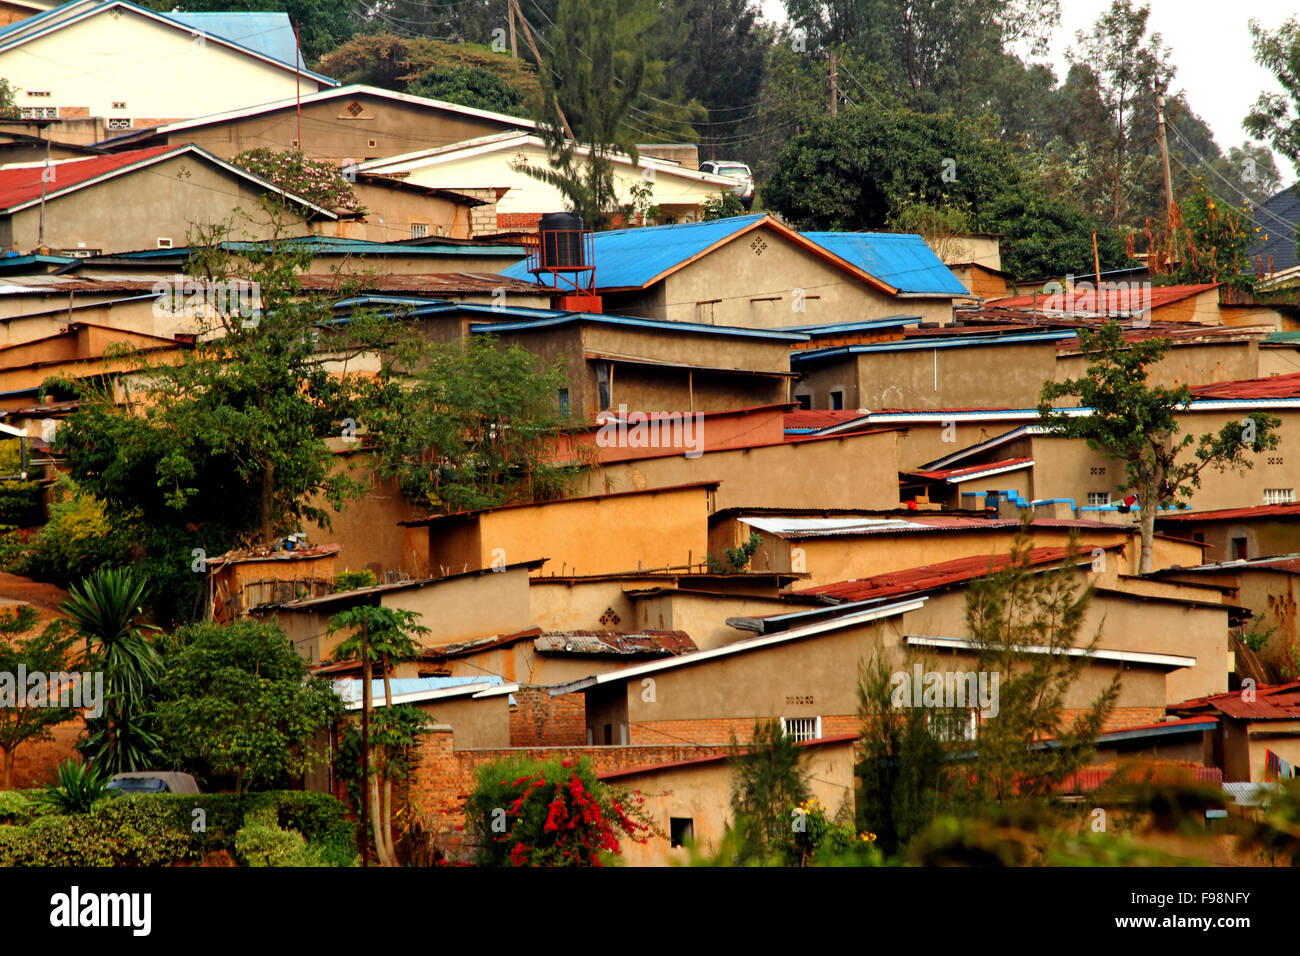 Houses on a hill in Kigali, Rwanda - Stock Image